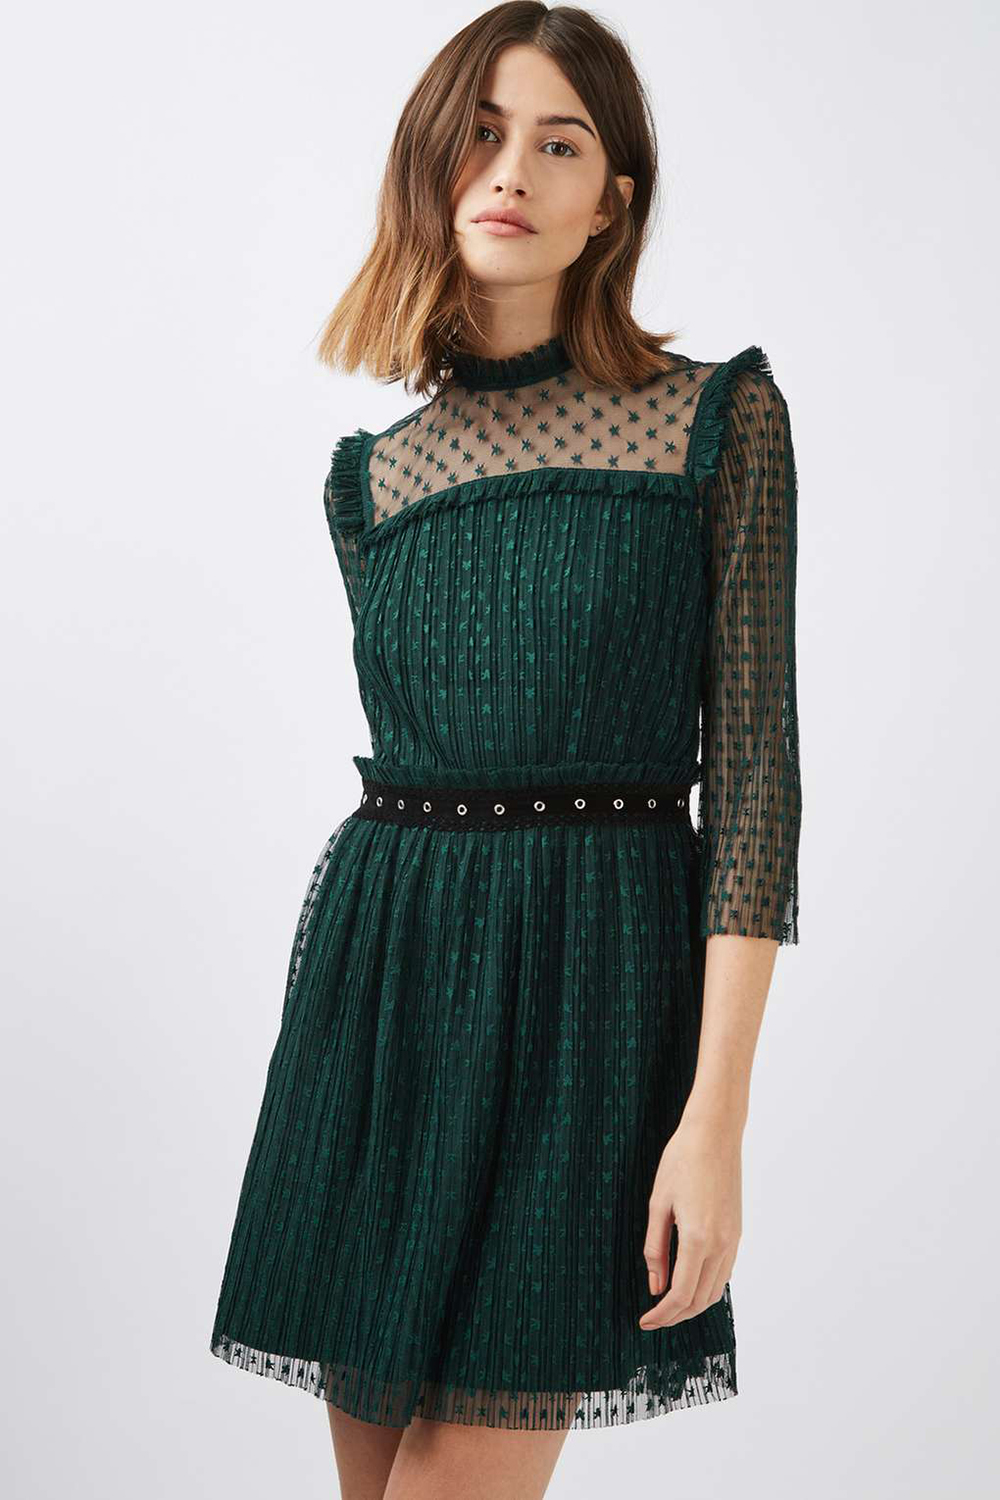 Topshop Plisse Star Mesh Skater Dress - Unwrap These 10 Holiday Dresses